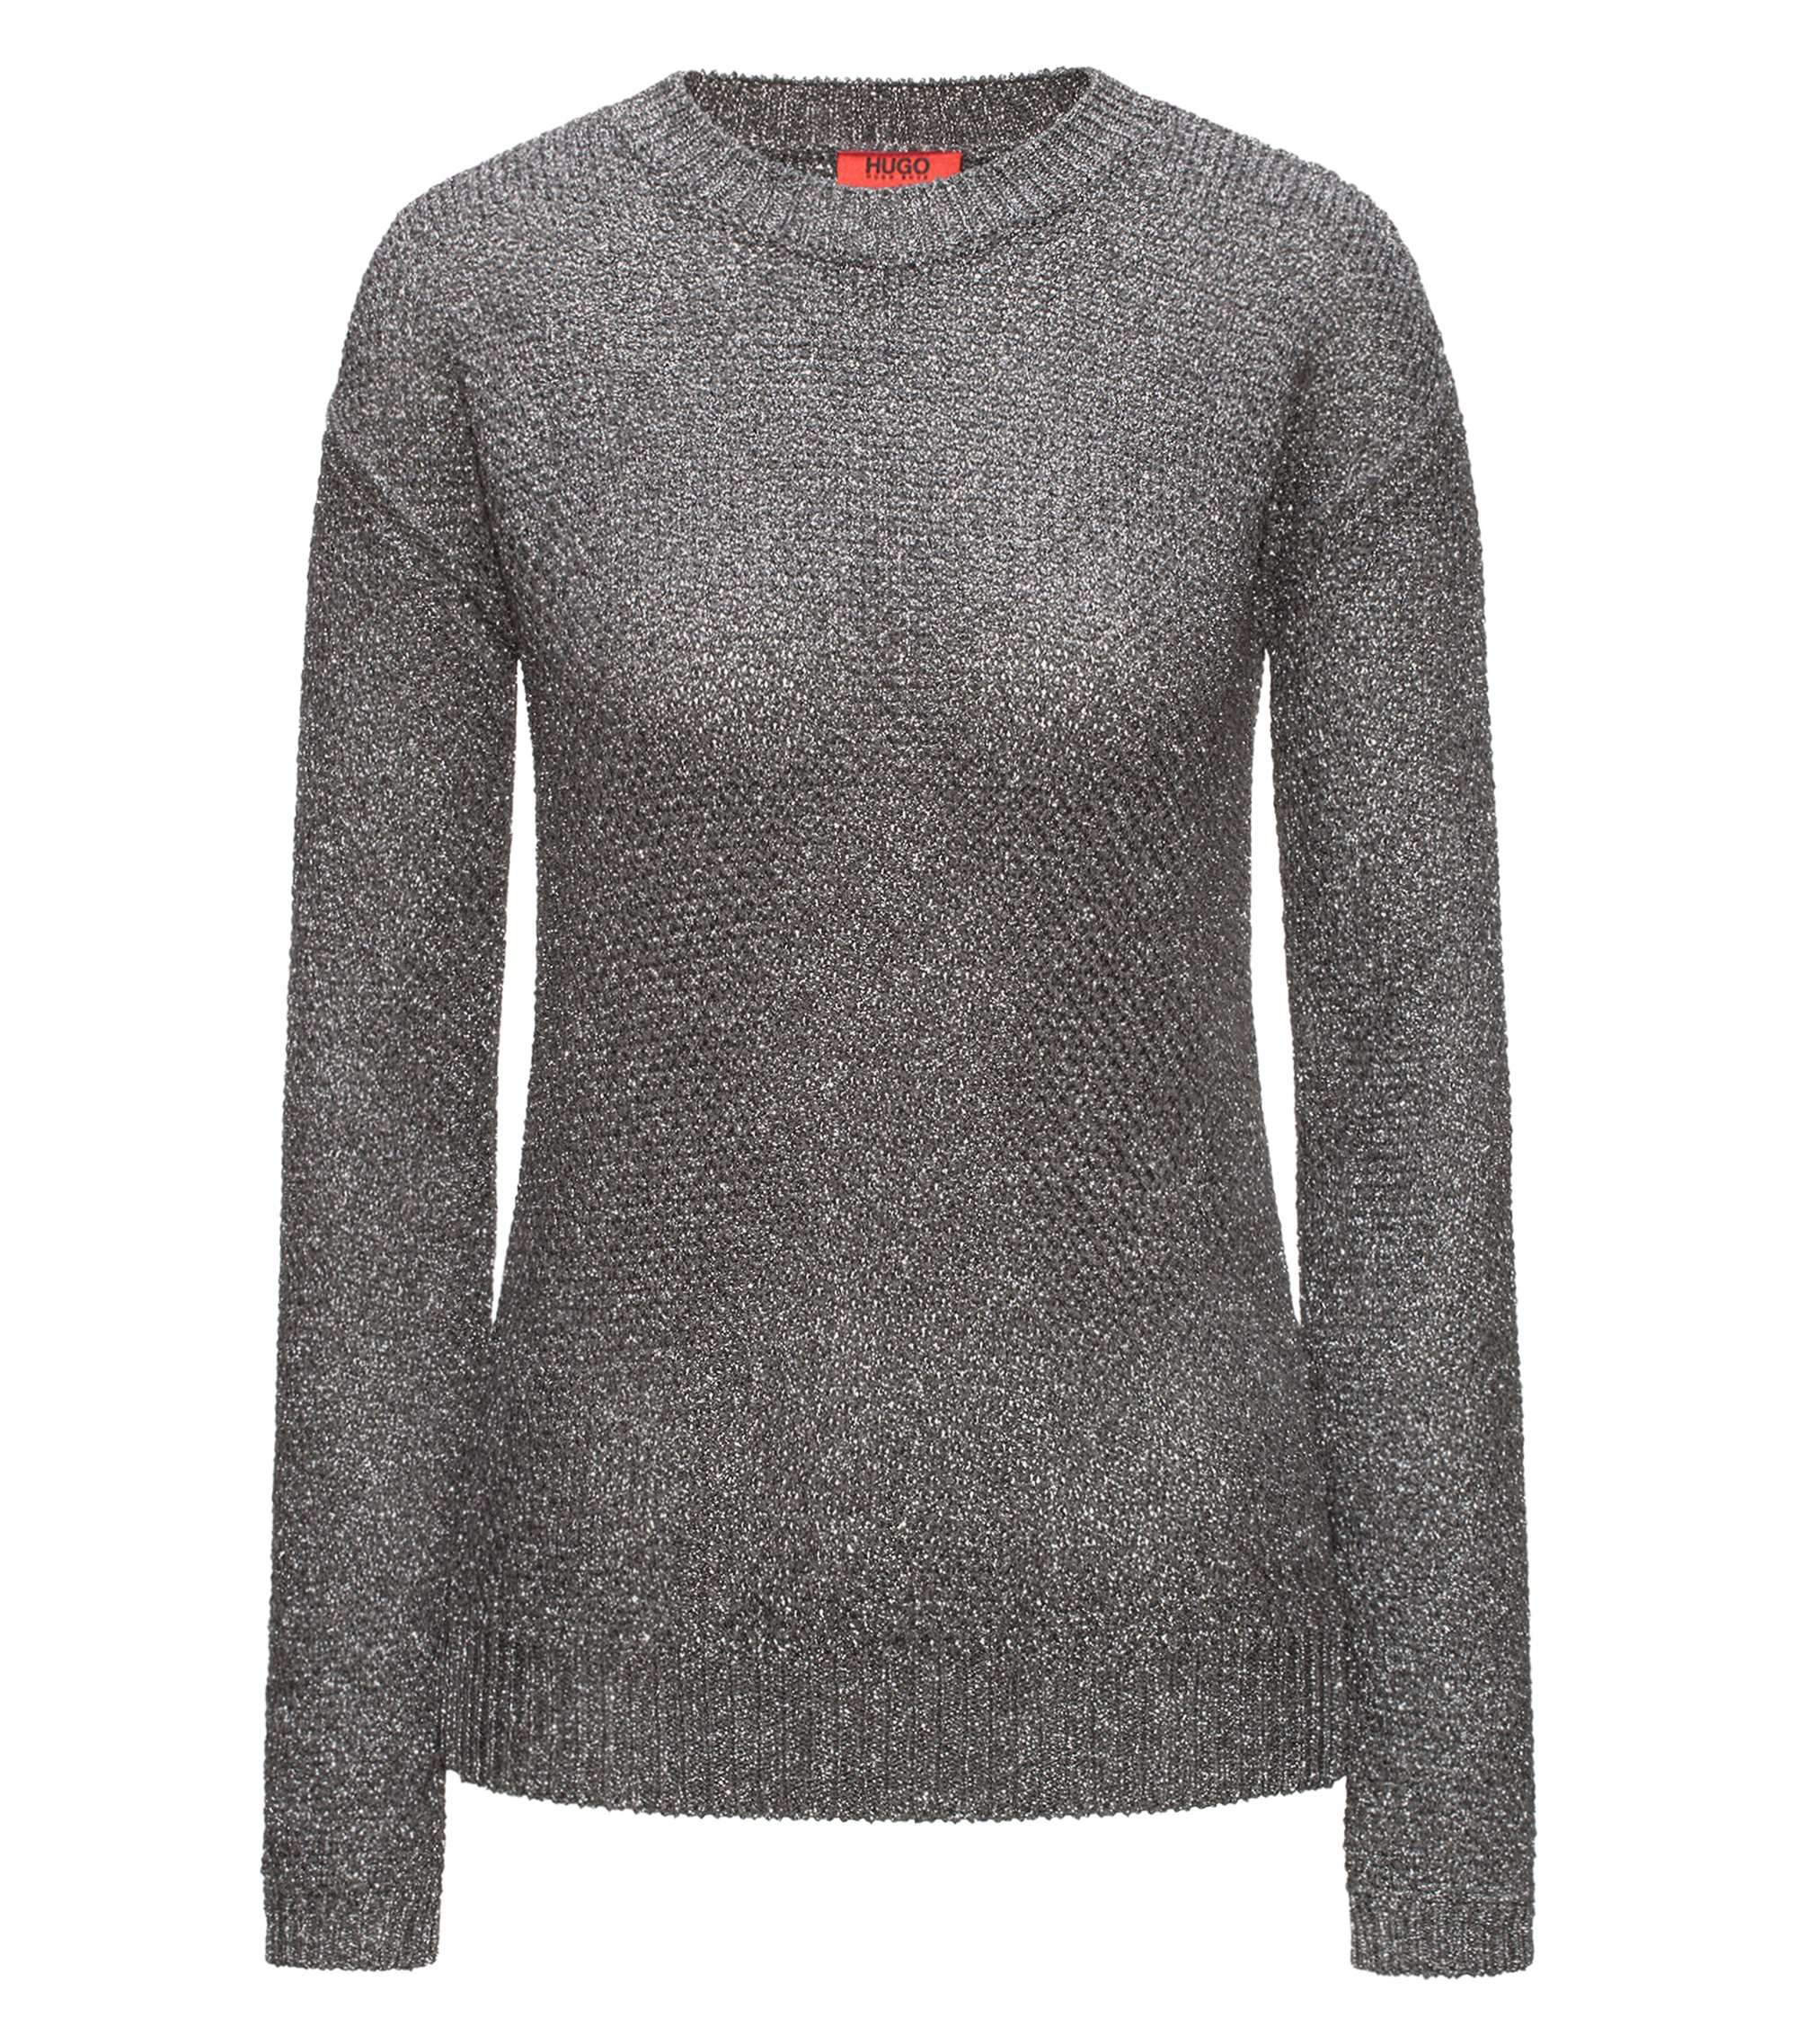 Crew-neck honeycomb-knit sweater with a touch of sparkle, Silver